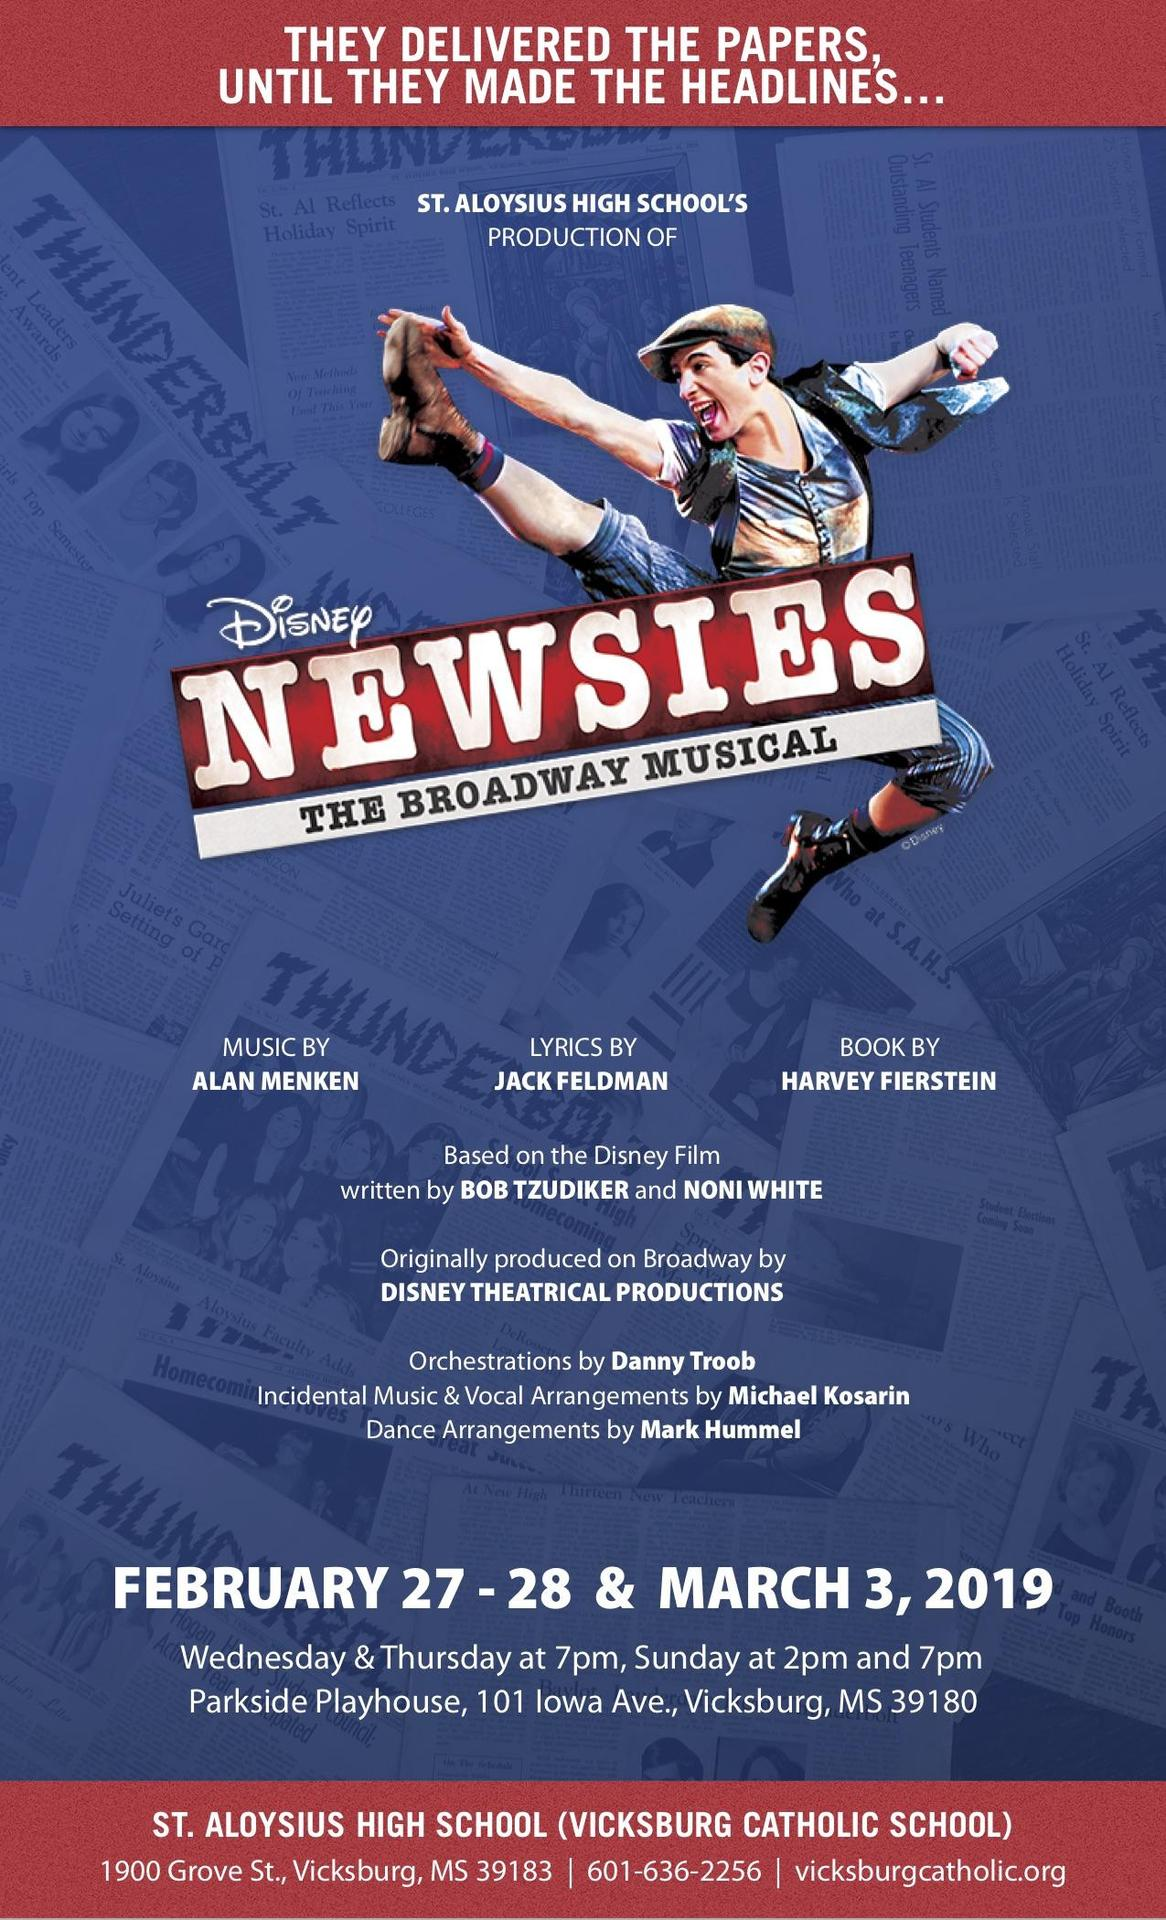 St. Aloysius High School's Production of Disney's Newsies Poster